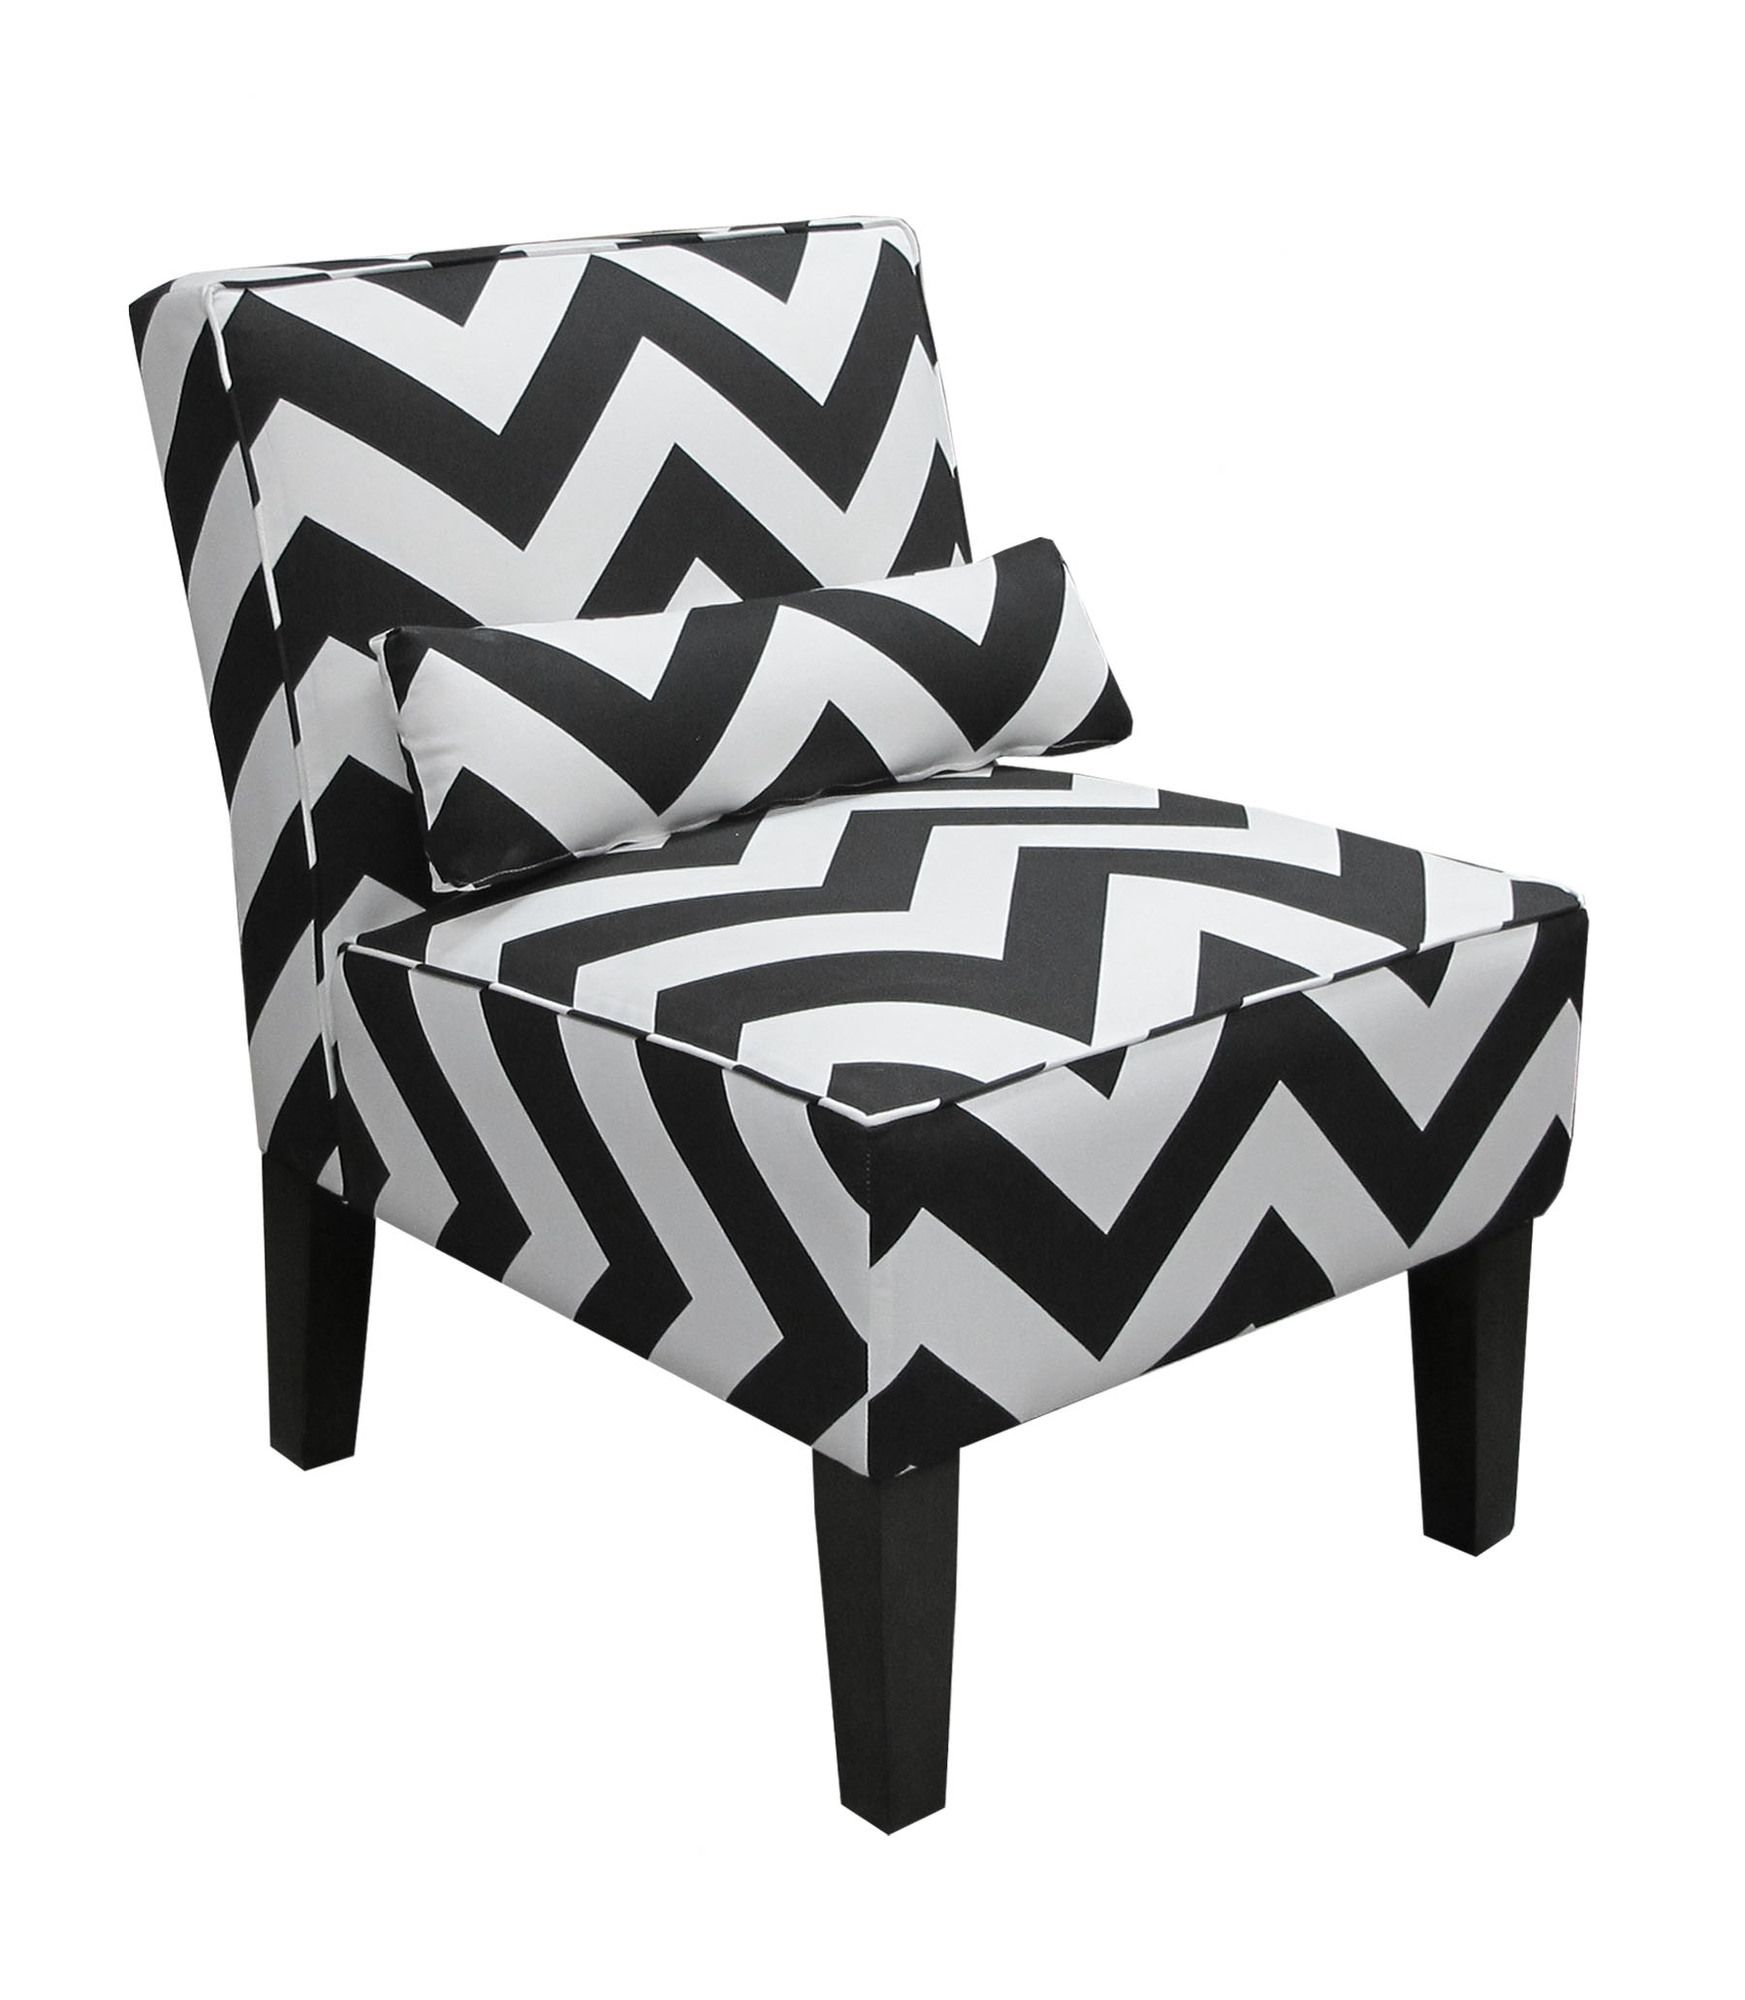 Missoni Style Print Accent Chair: Skyline Furniture Upholstered Armless Accent Chair. Like